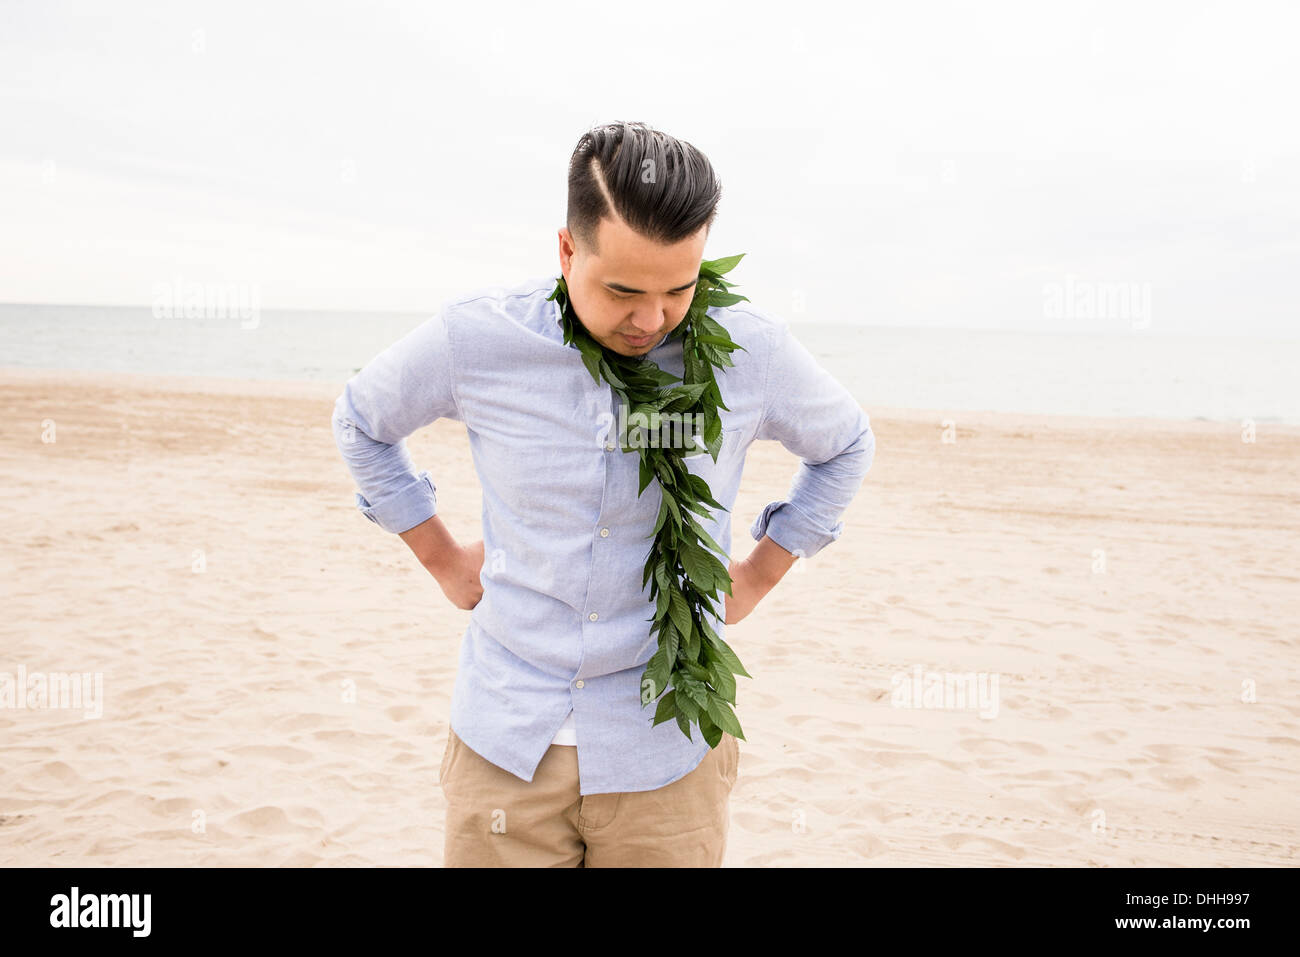 Man standing on beach with foliage round his neck - Stock Image